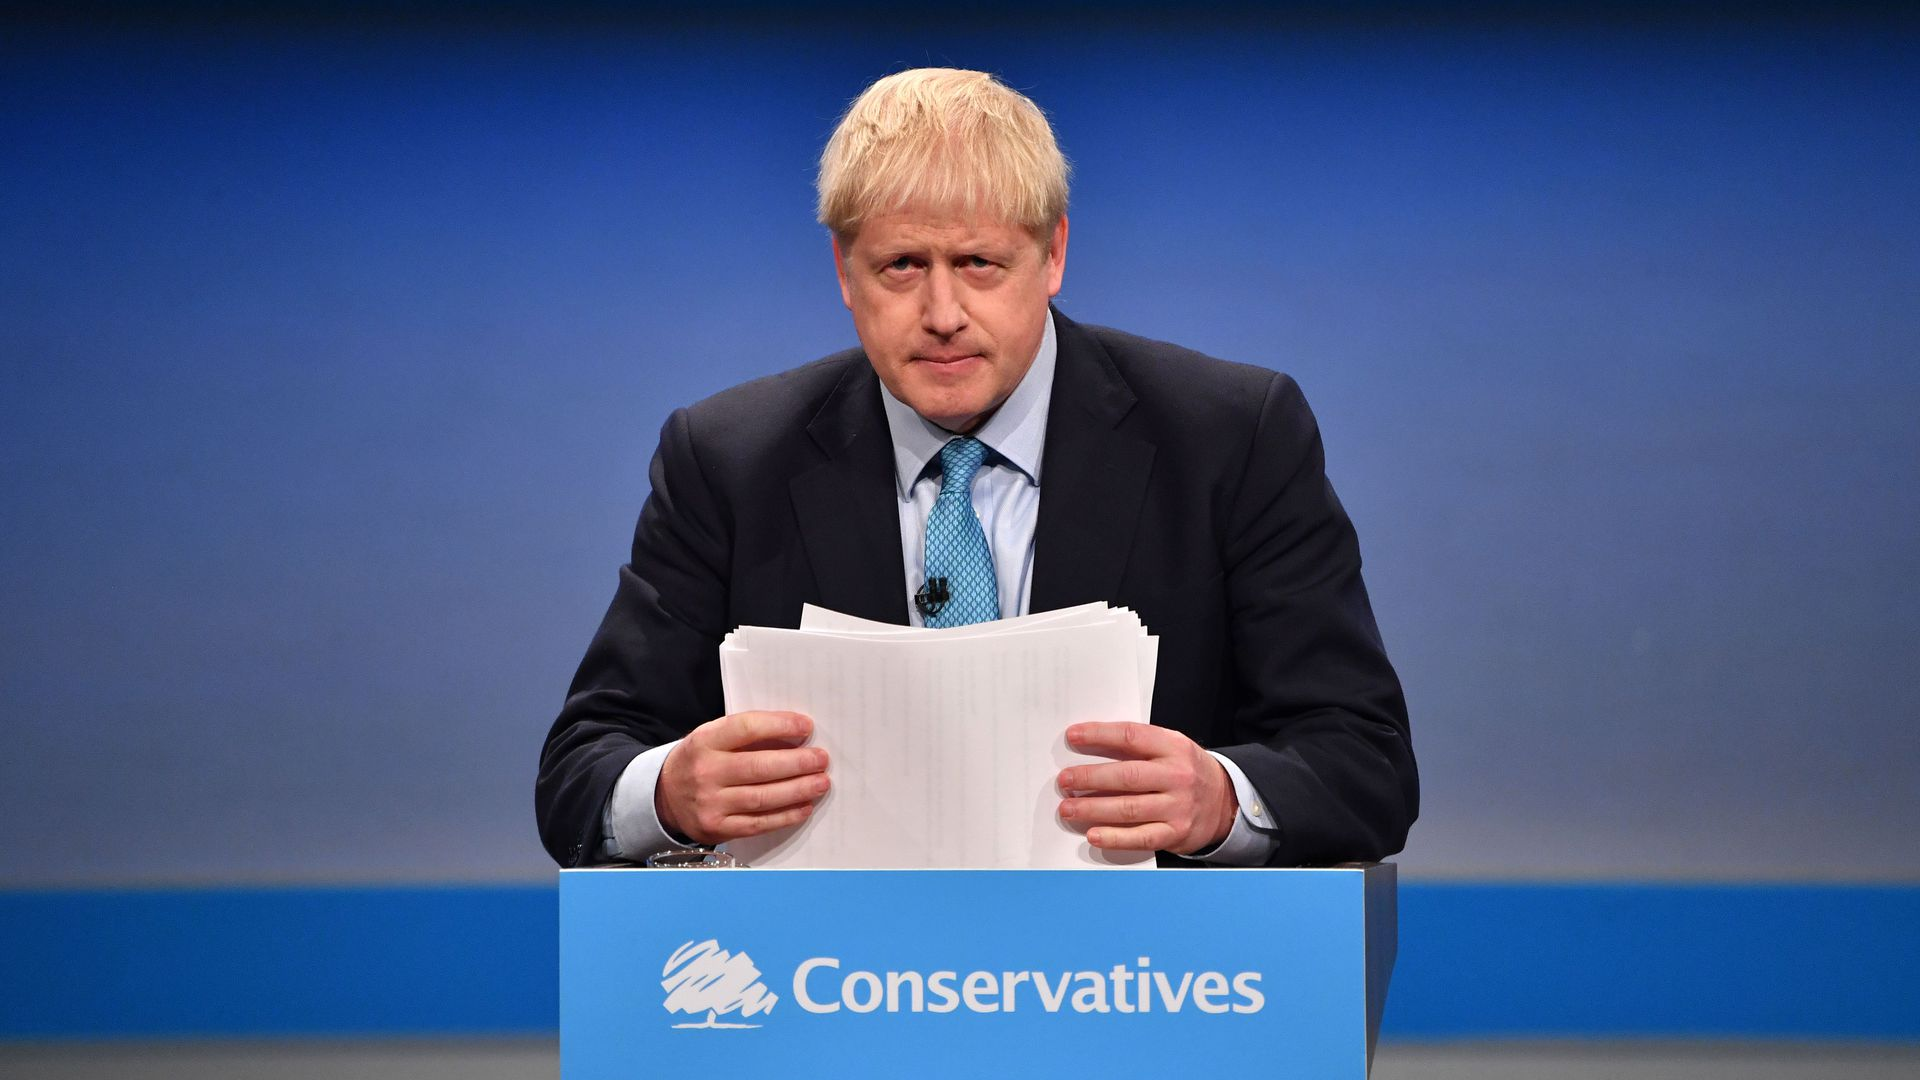 Britain's Prime Minister Boris Johnson shuffles his papers as he delivers his keynote speech